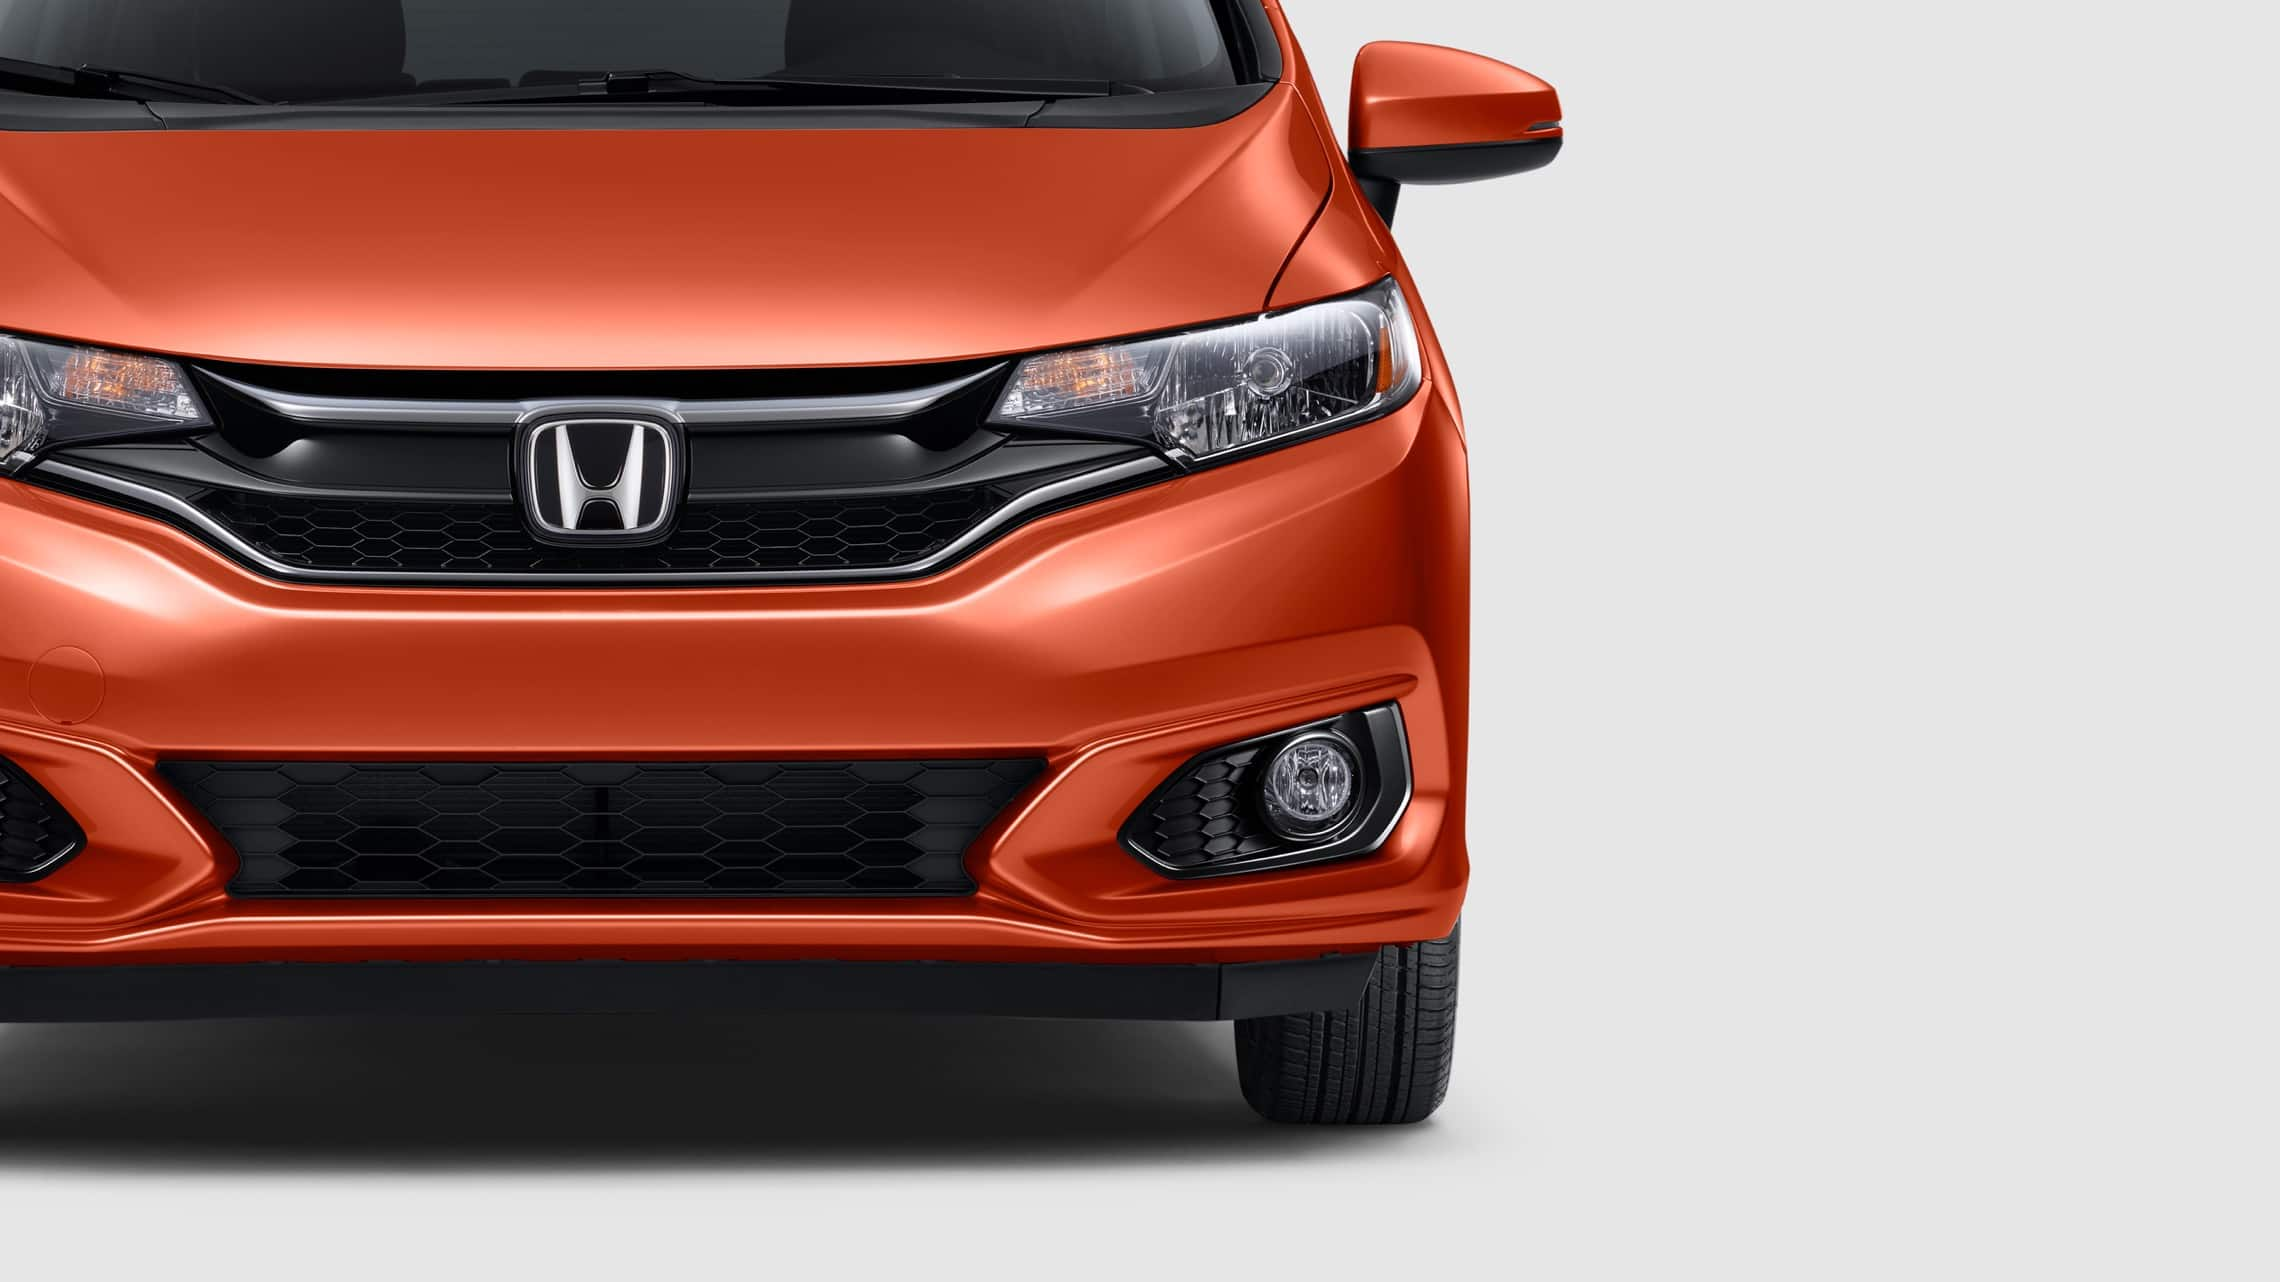 Front exterior view of the 2020 Honda Fit EX-L in Orange Fury.